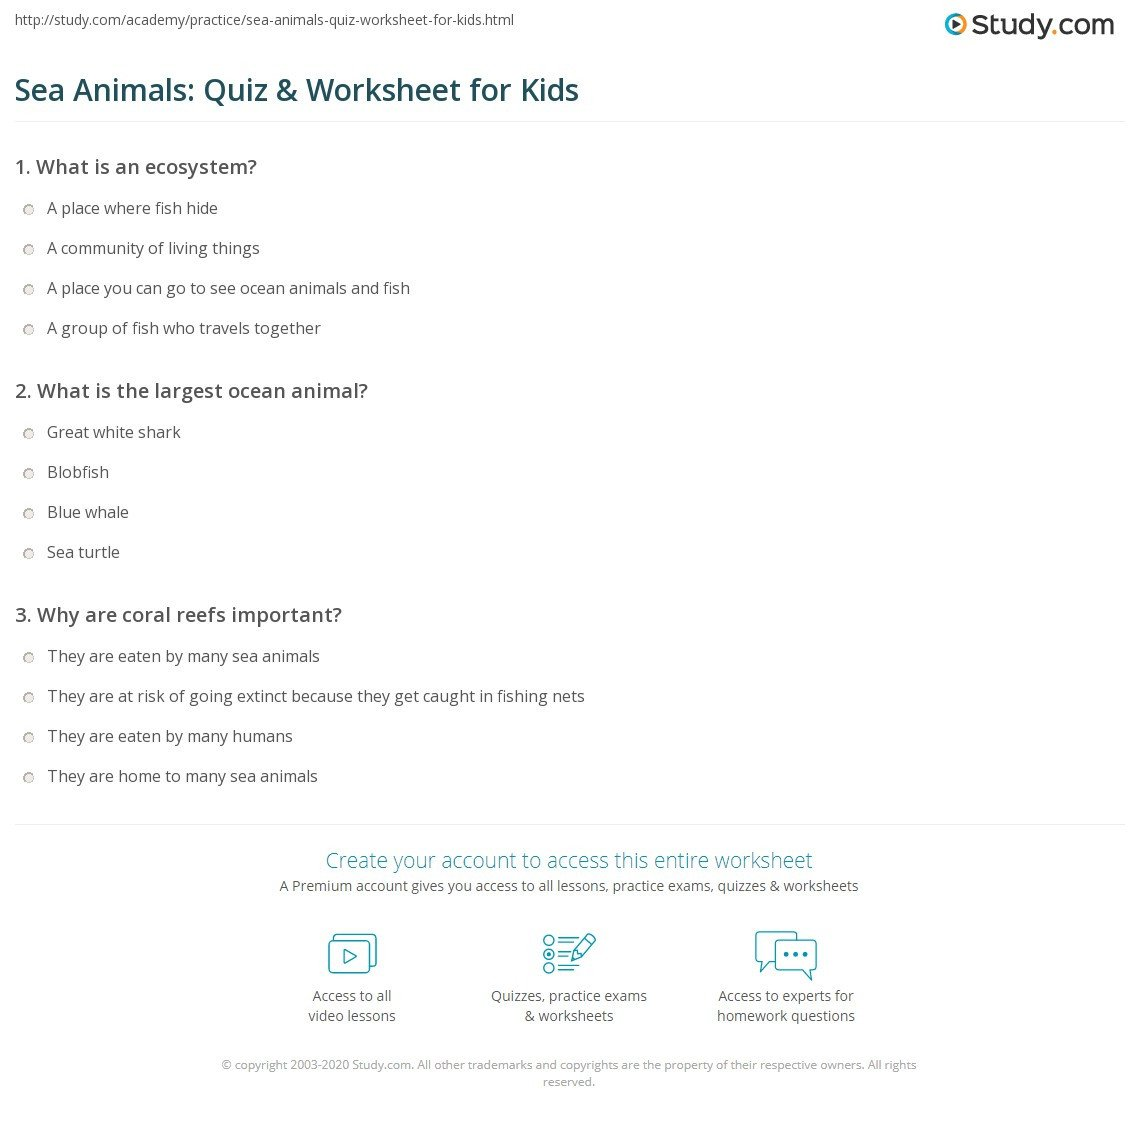 Sea Animal Worksheets Sea Animals Quiz & Worksheet for Kids